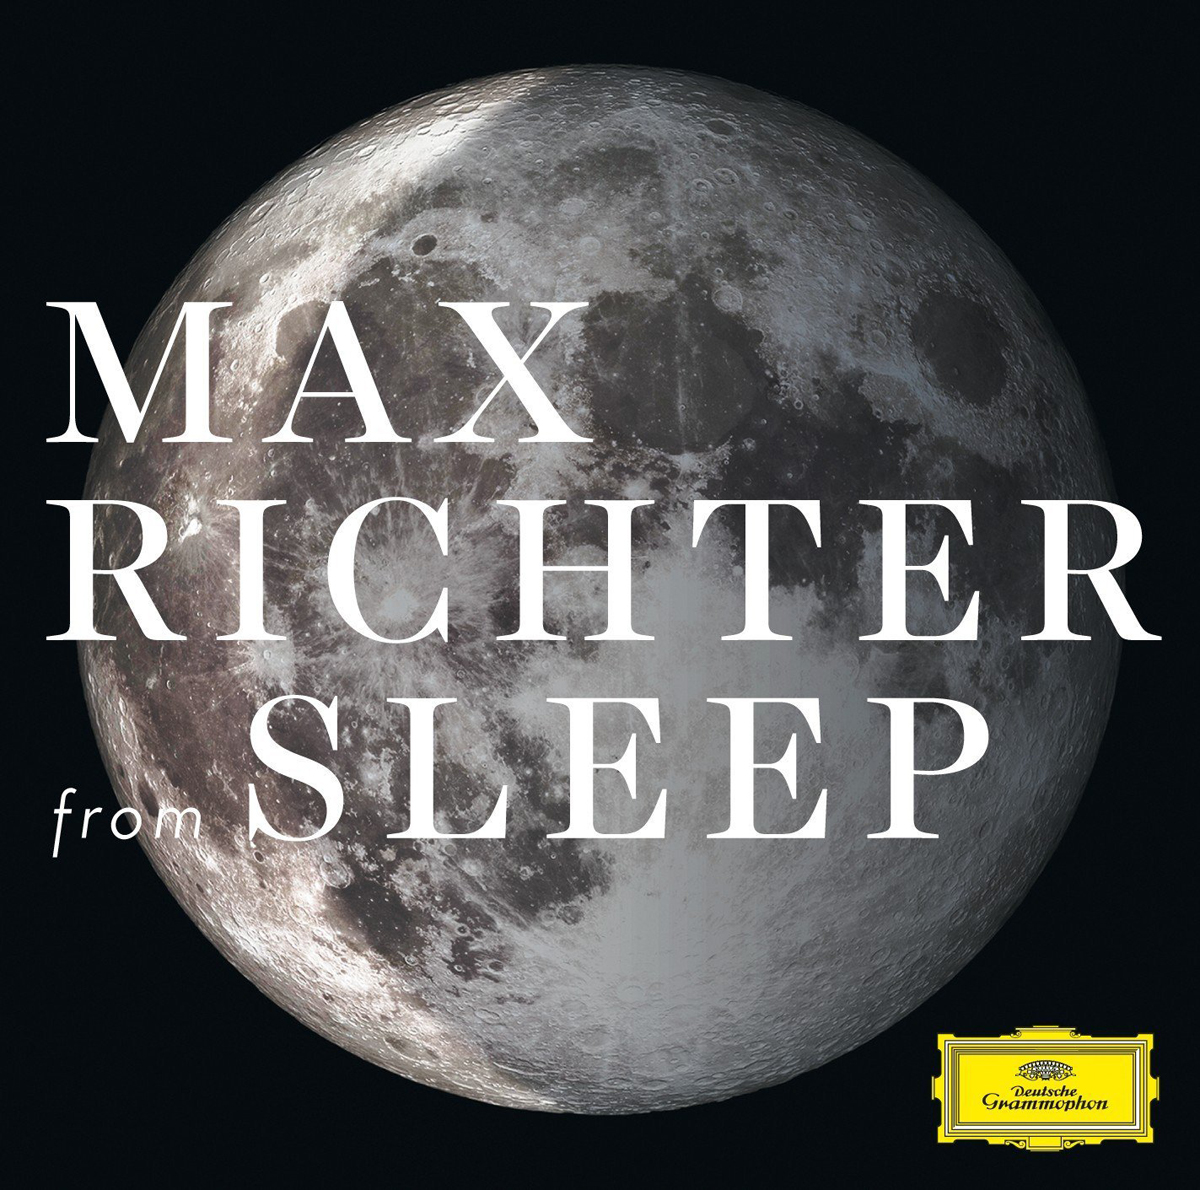 Макс Рихтер,American Contemporary Music Ensemble Max Richter. From Sleep max richter max richter from sleep 2 lp 180 gr transparent